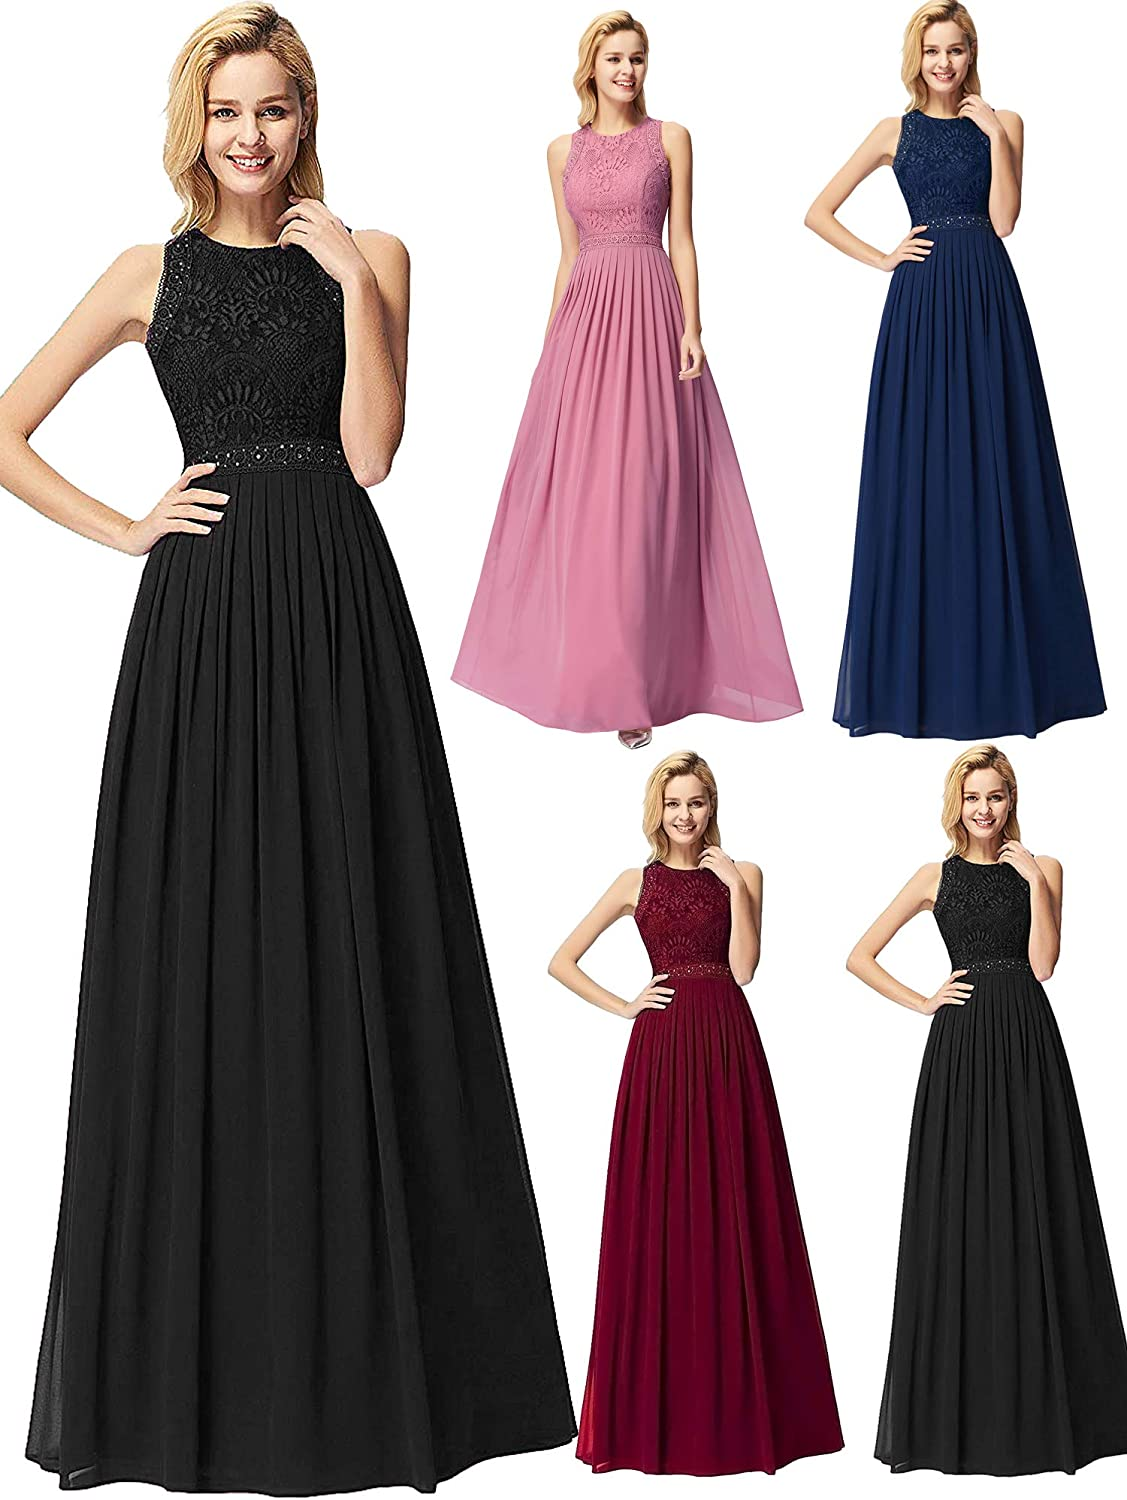 EverPretty Women Elegant A Line Long Pleated Prom Dress with Lace Bodice 07391